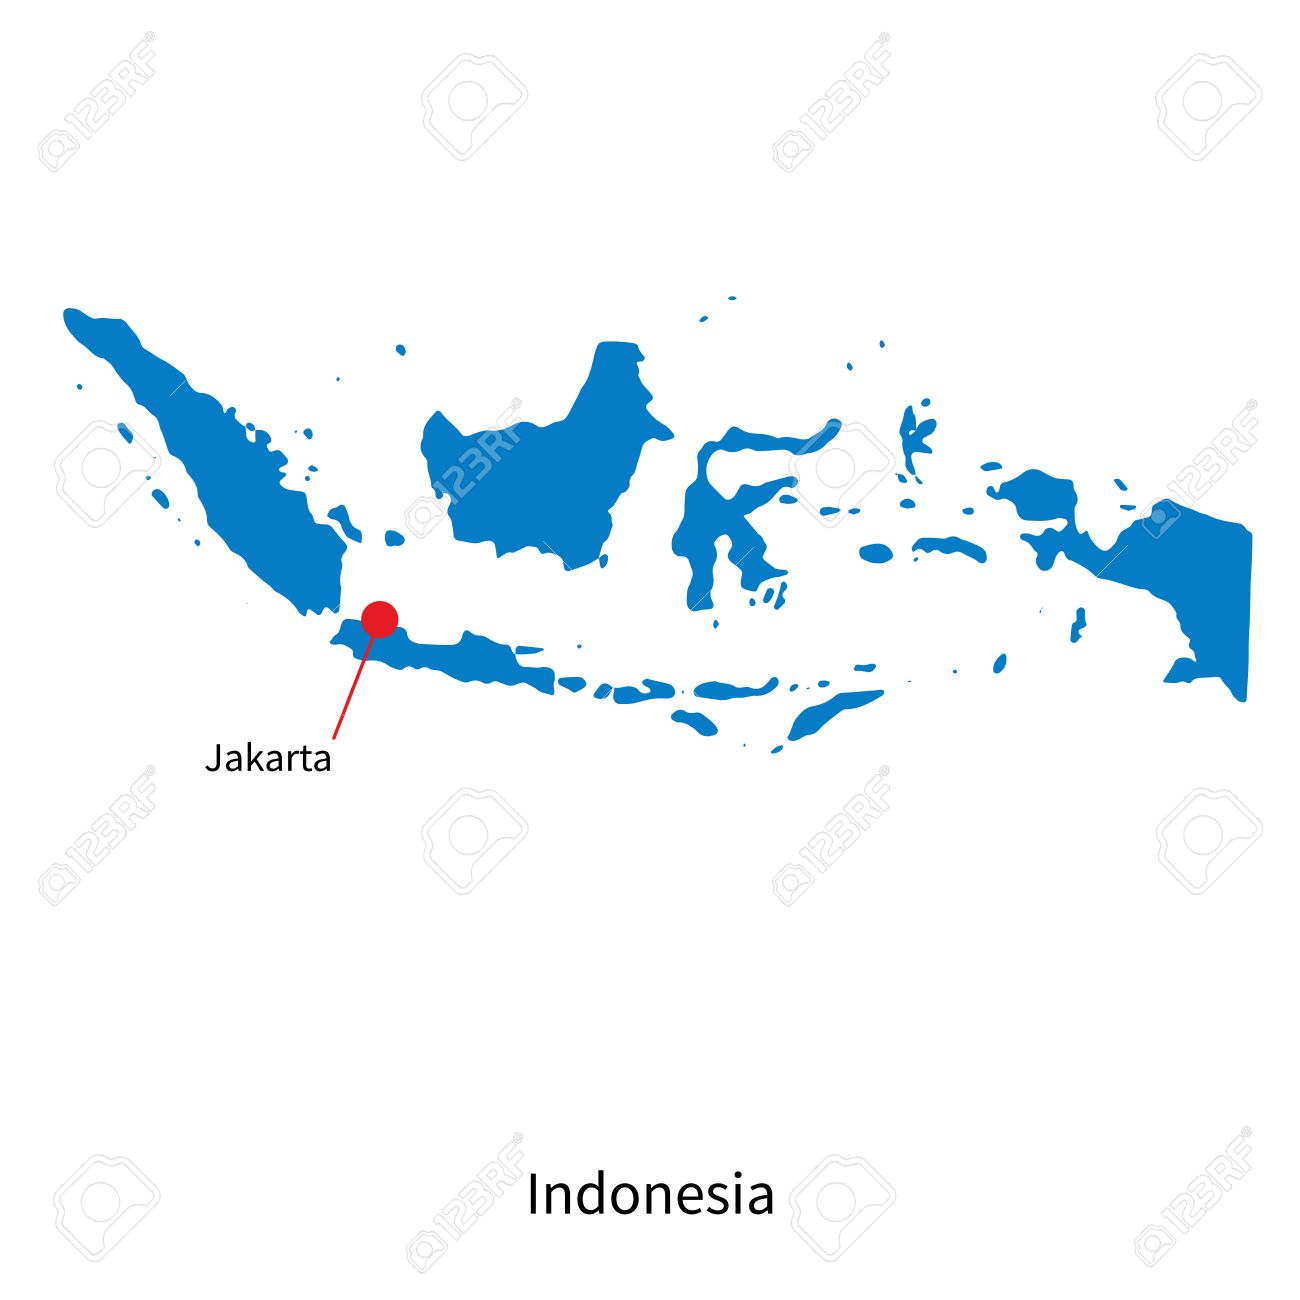 Detailed map of indonesia and capital city jakarta royalty free detailed map of indonesia and capital city jakarta stock vector 31102947 gumiabroncs Images